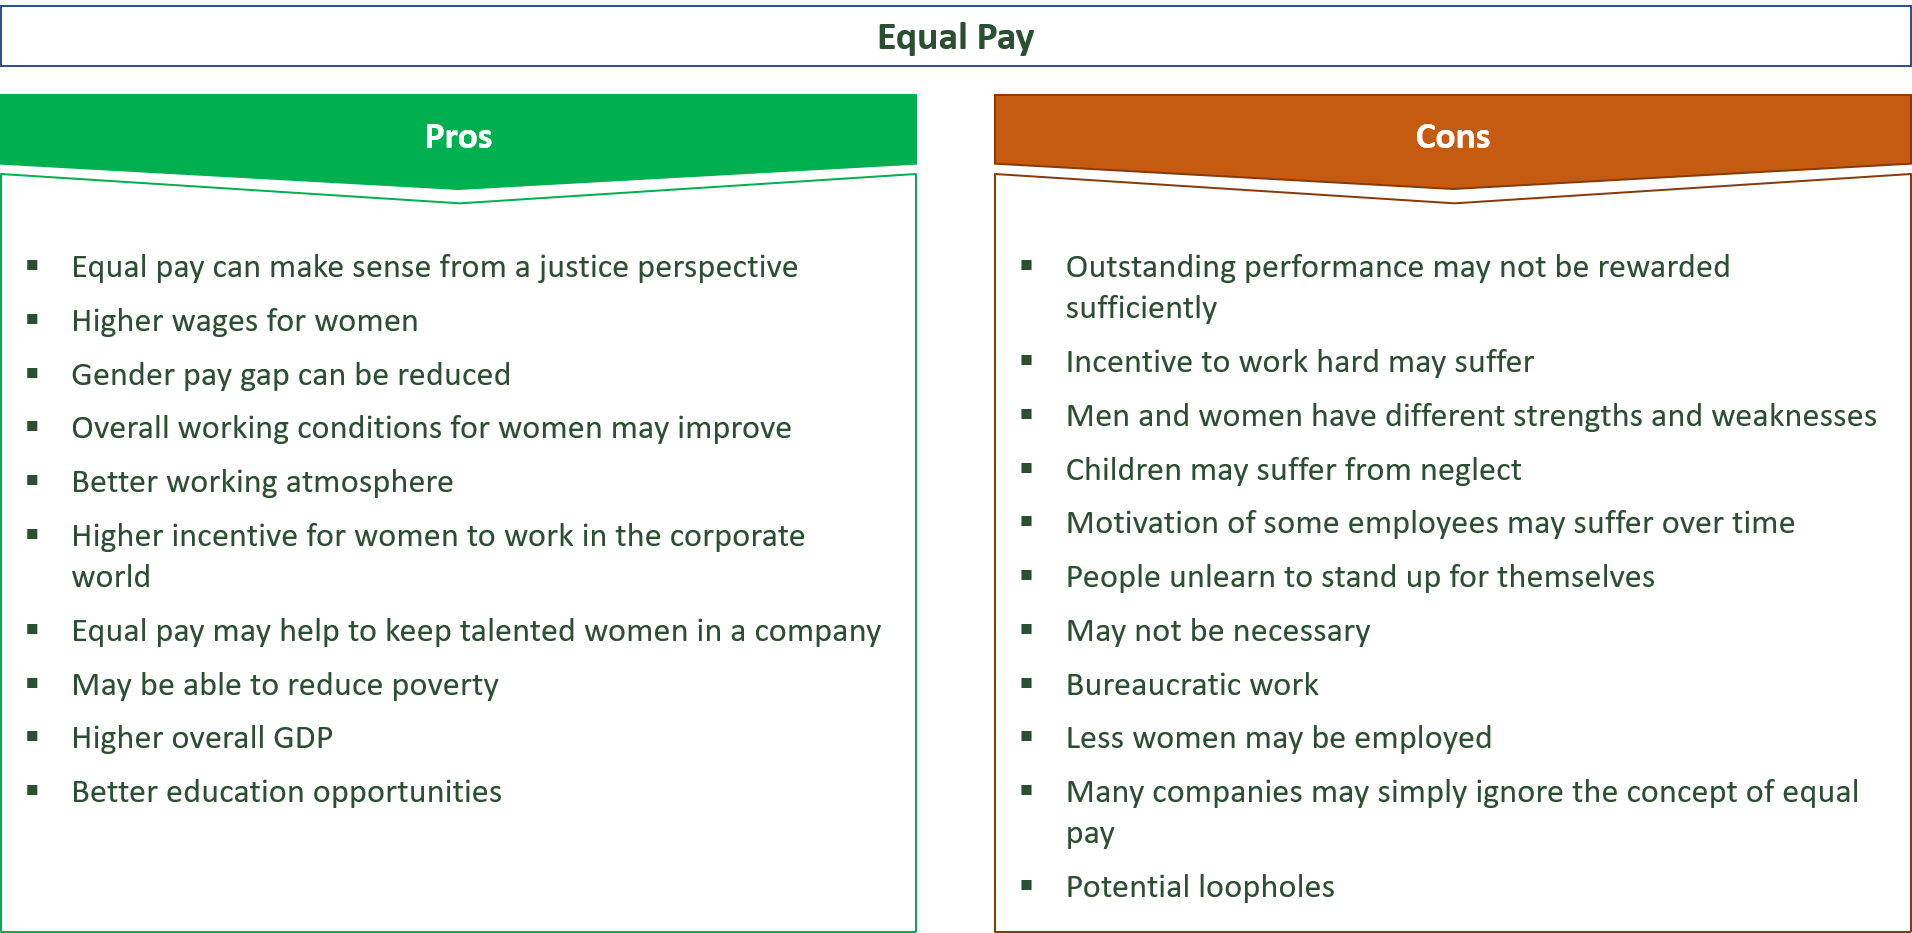 advantages and disadvantages of equal pay